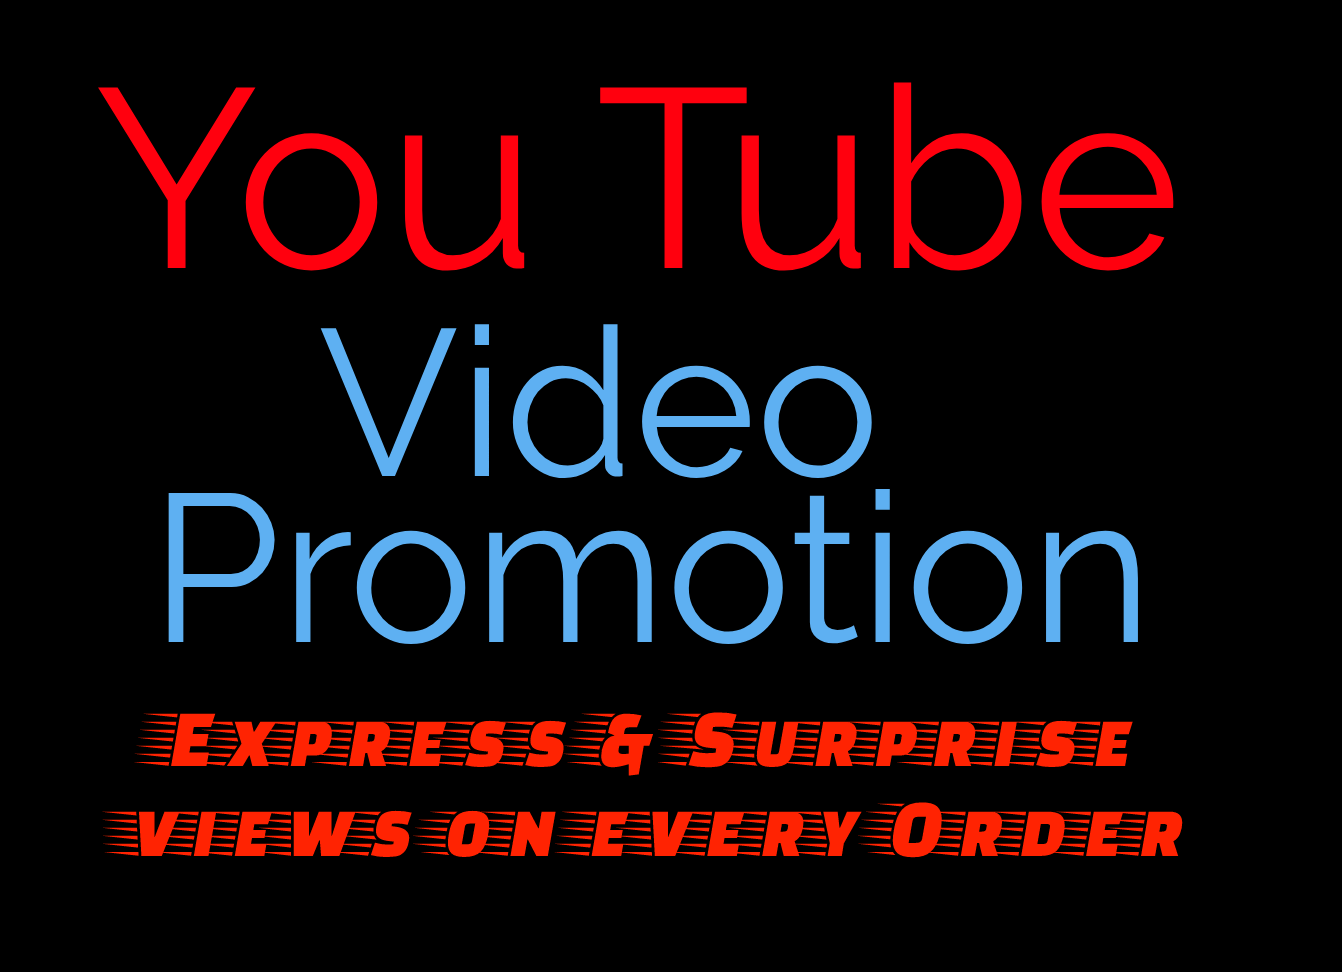 FAST AND HigH QUALITY VIDEO PROMOTION